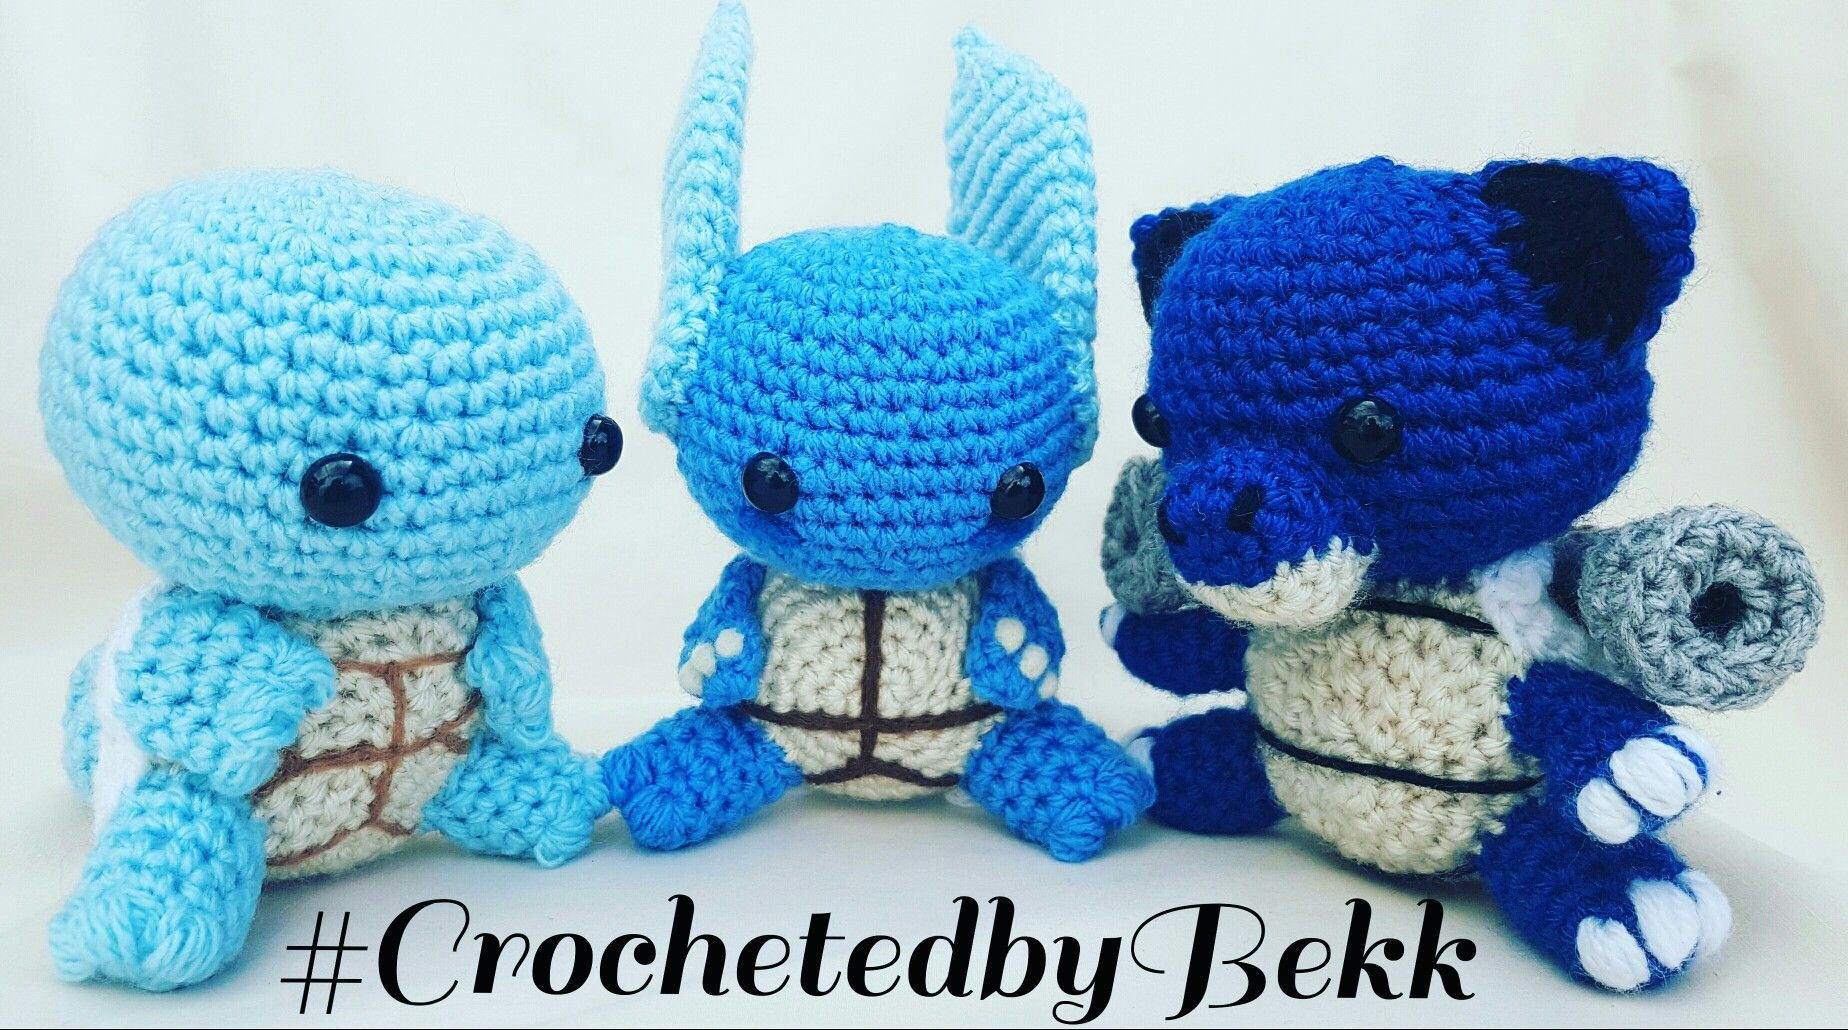 Squirtle Evelution Line up! #Blastoise #CrochetedbyBekk #Pokemon ...